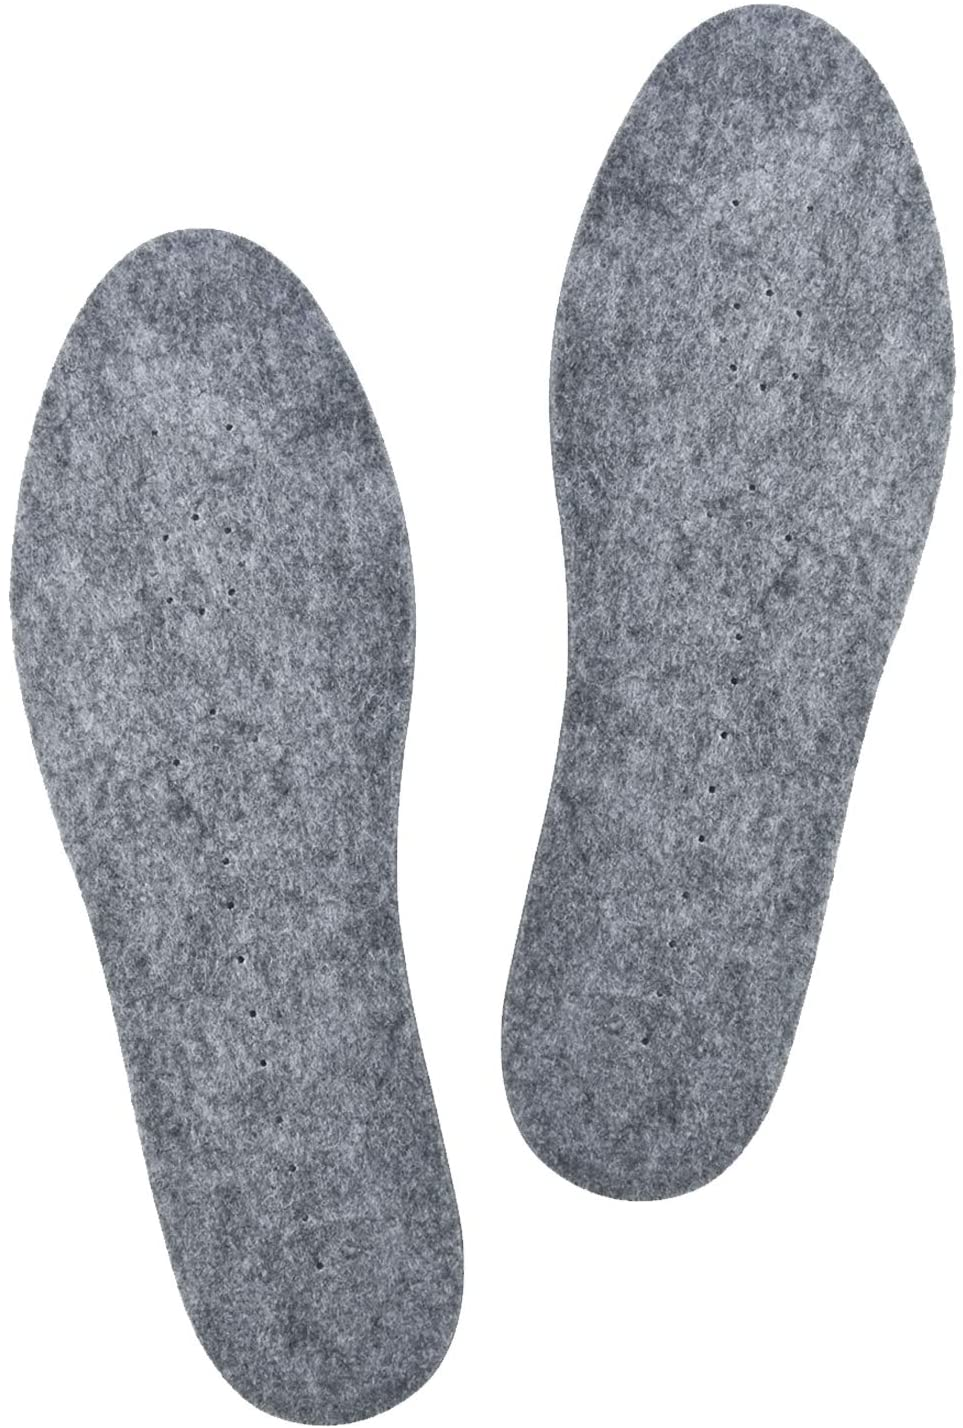 Knixmax Womens Wool Felt Insoles Warm Shoe Inserts for Boots Winter Shoes 7/EU 38